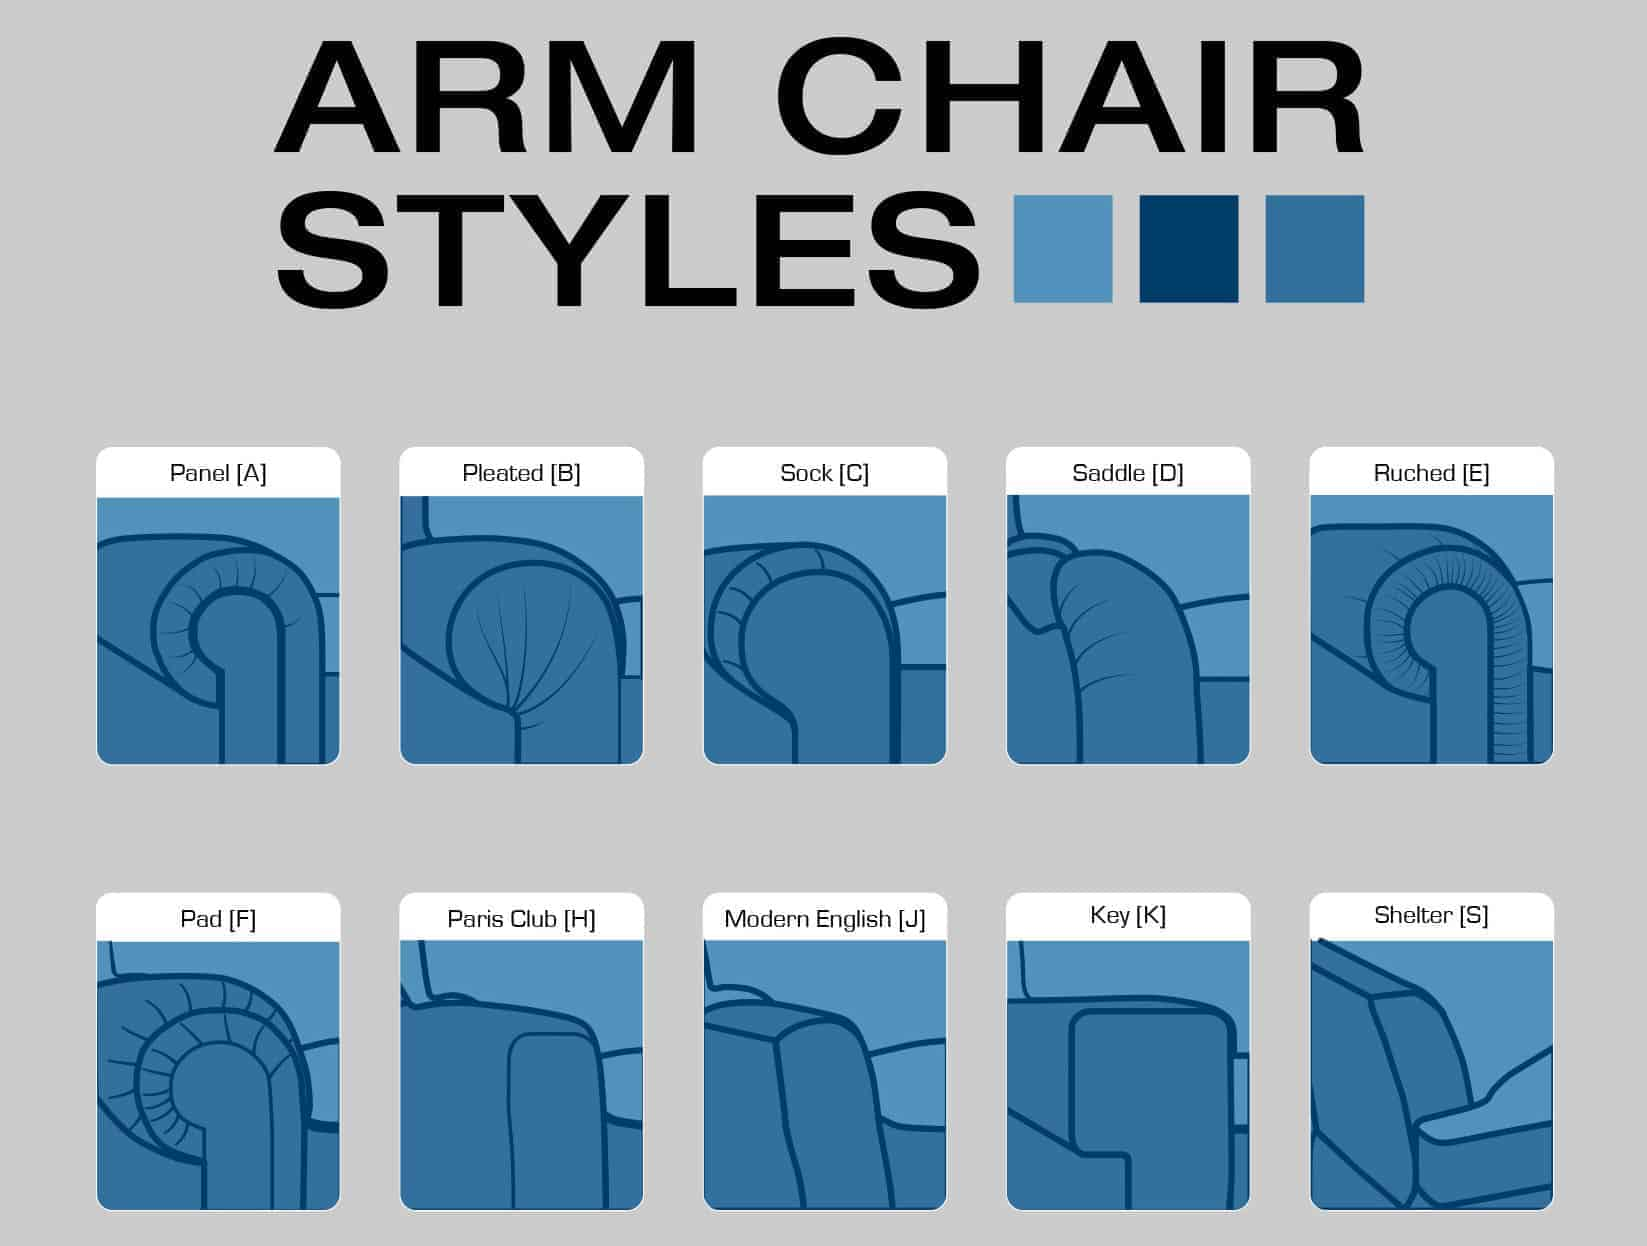 sofa arm couch bed trolley 15 styles illustrated guide